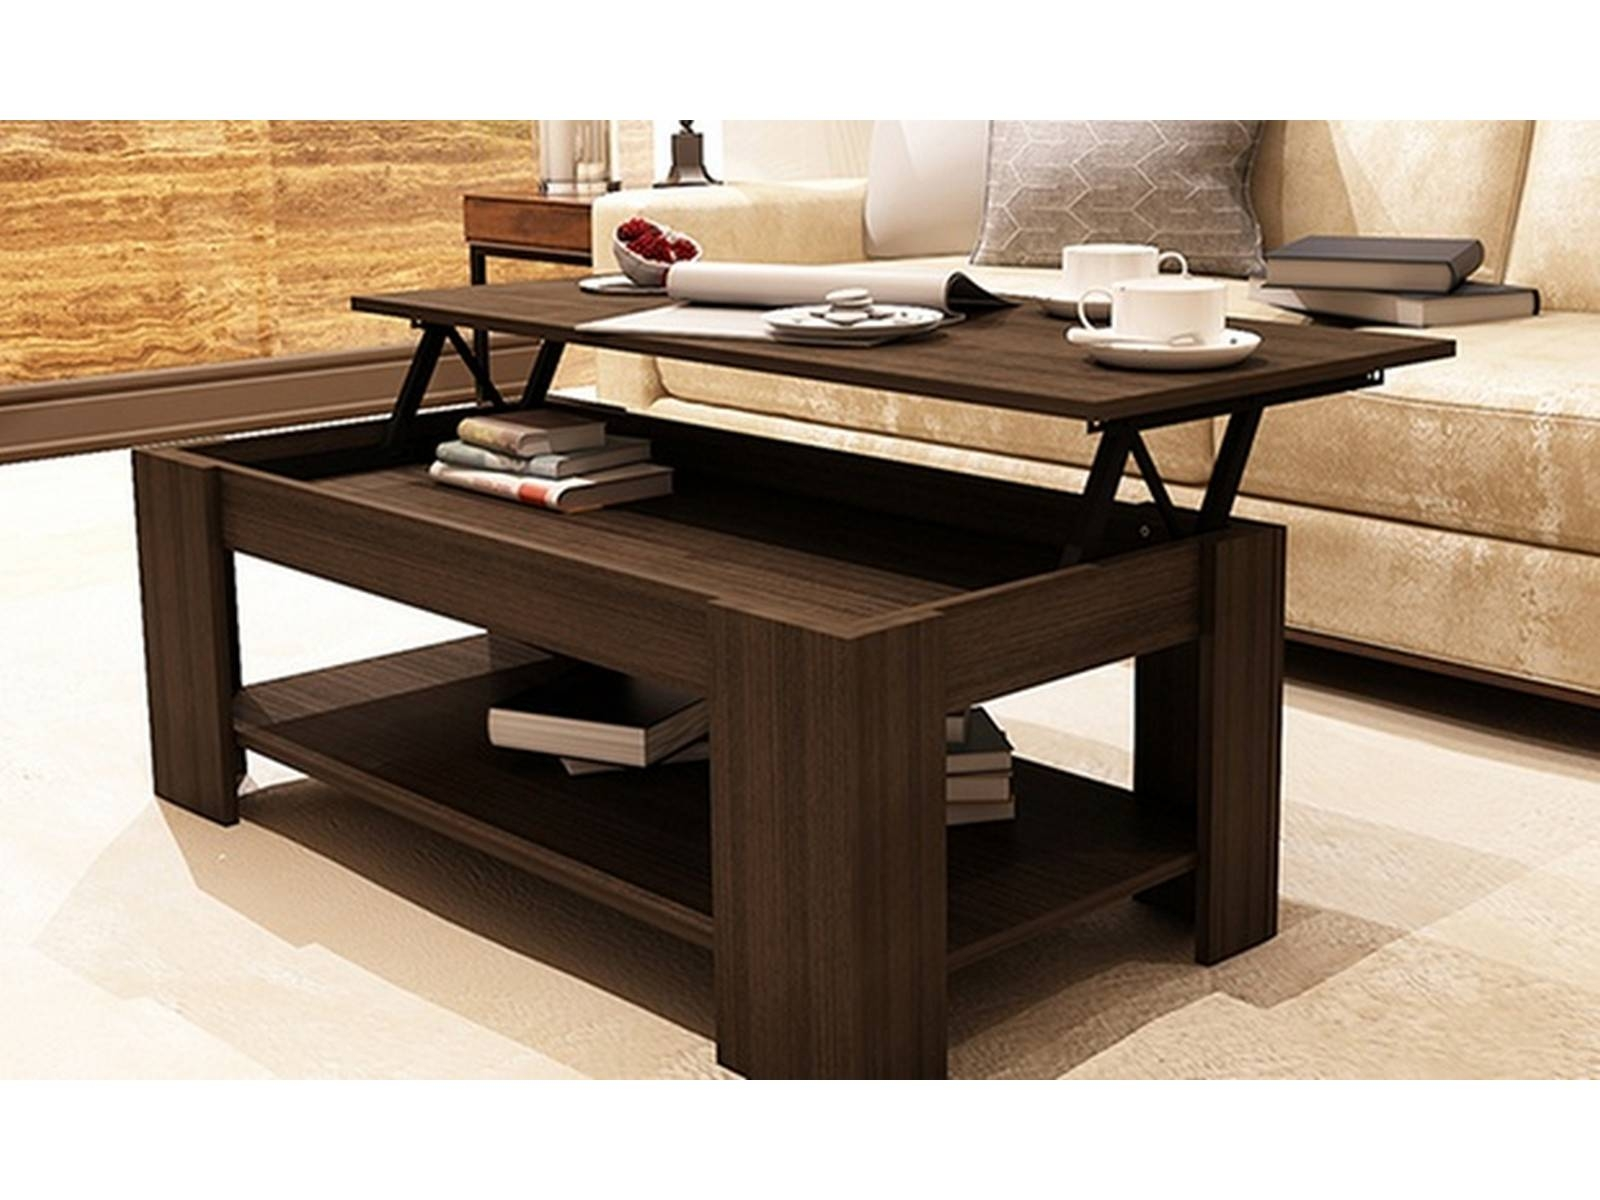 Furniture Home : Lift Top Coffee Table With Storage Design Modern with Lift Up Top Coffee Tables (Image 13 of 30)